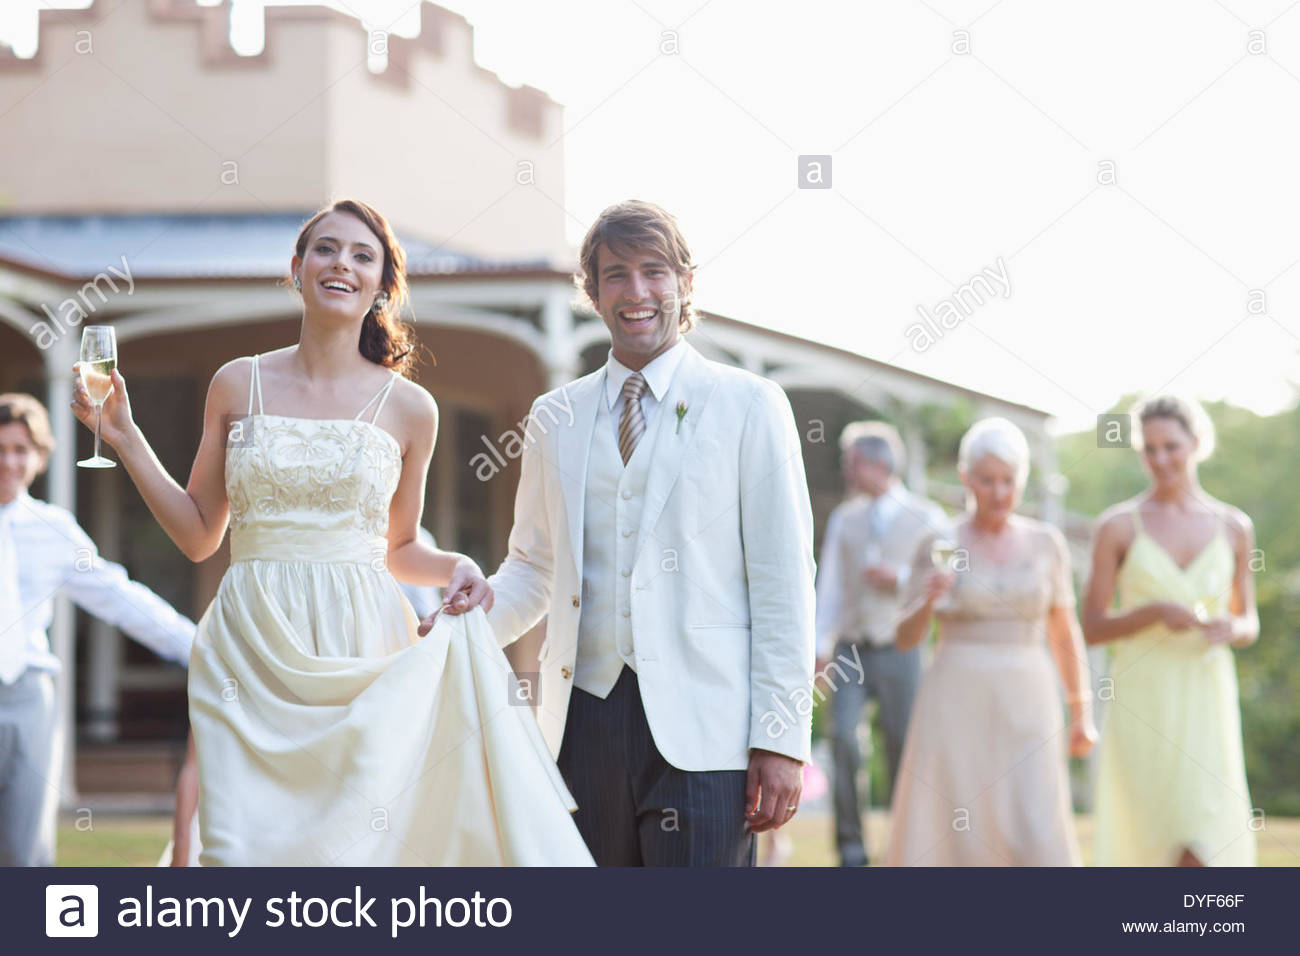 Bride, groom and guests walking across lawn - Stock Image